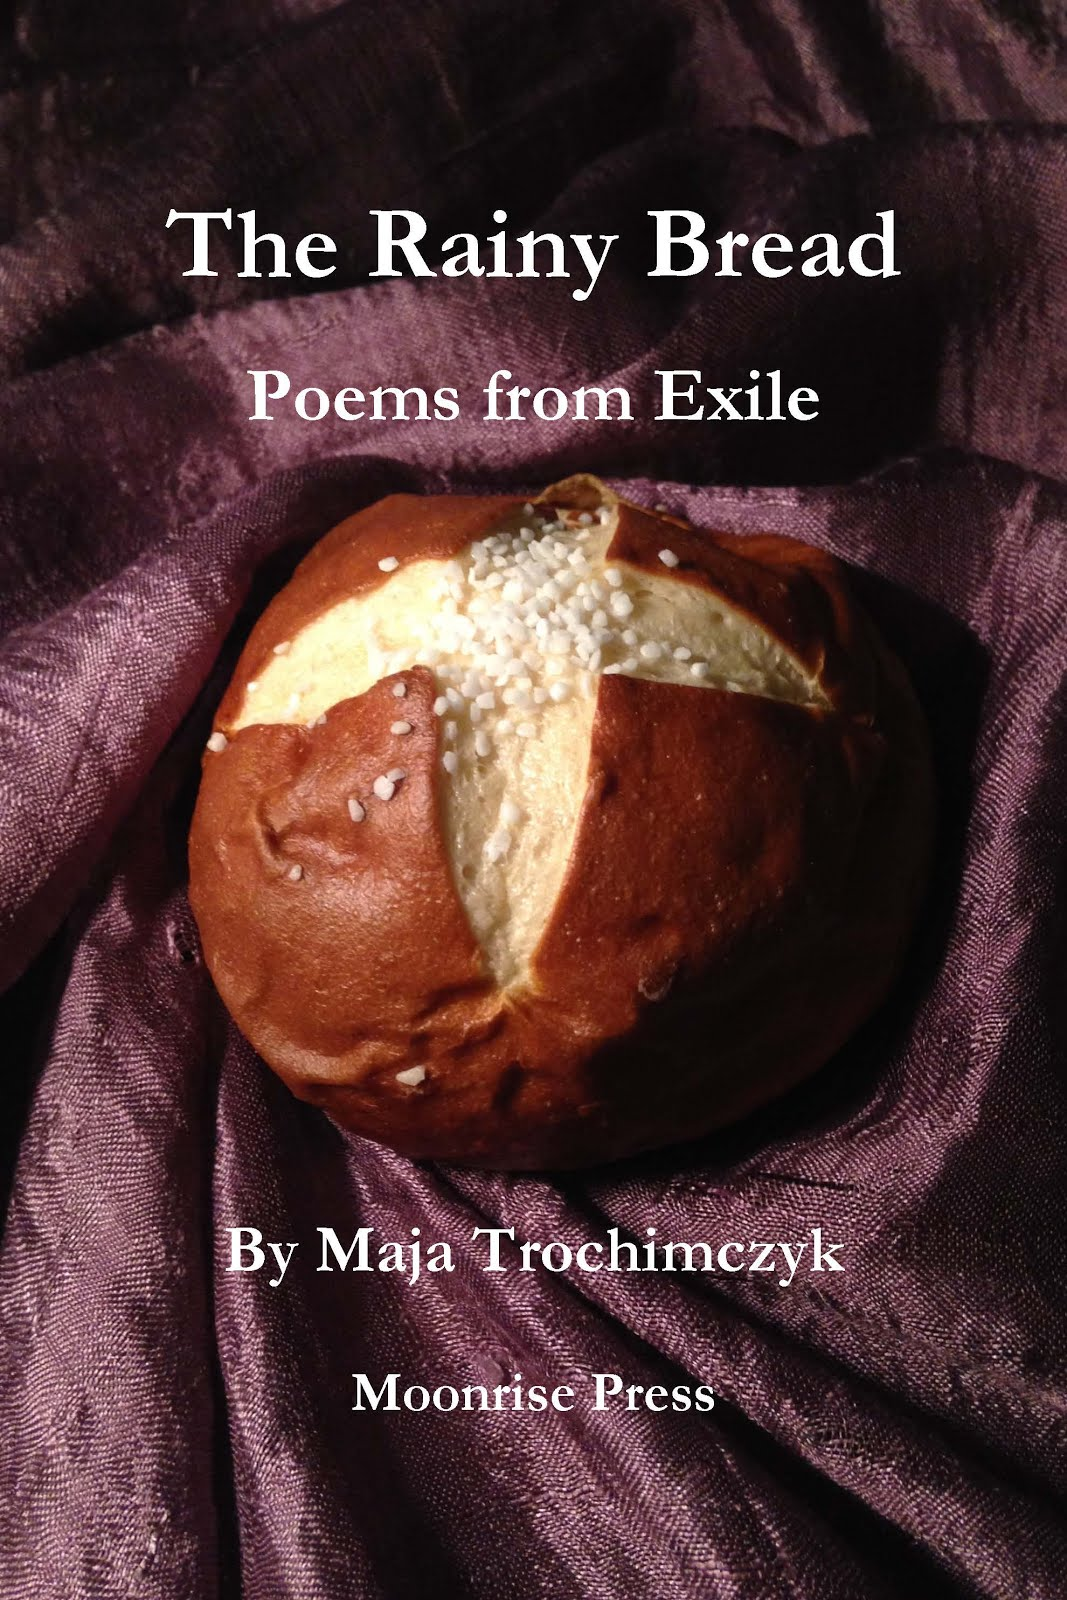 The Rainy Bread: Poems from Exile